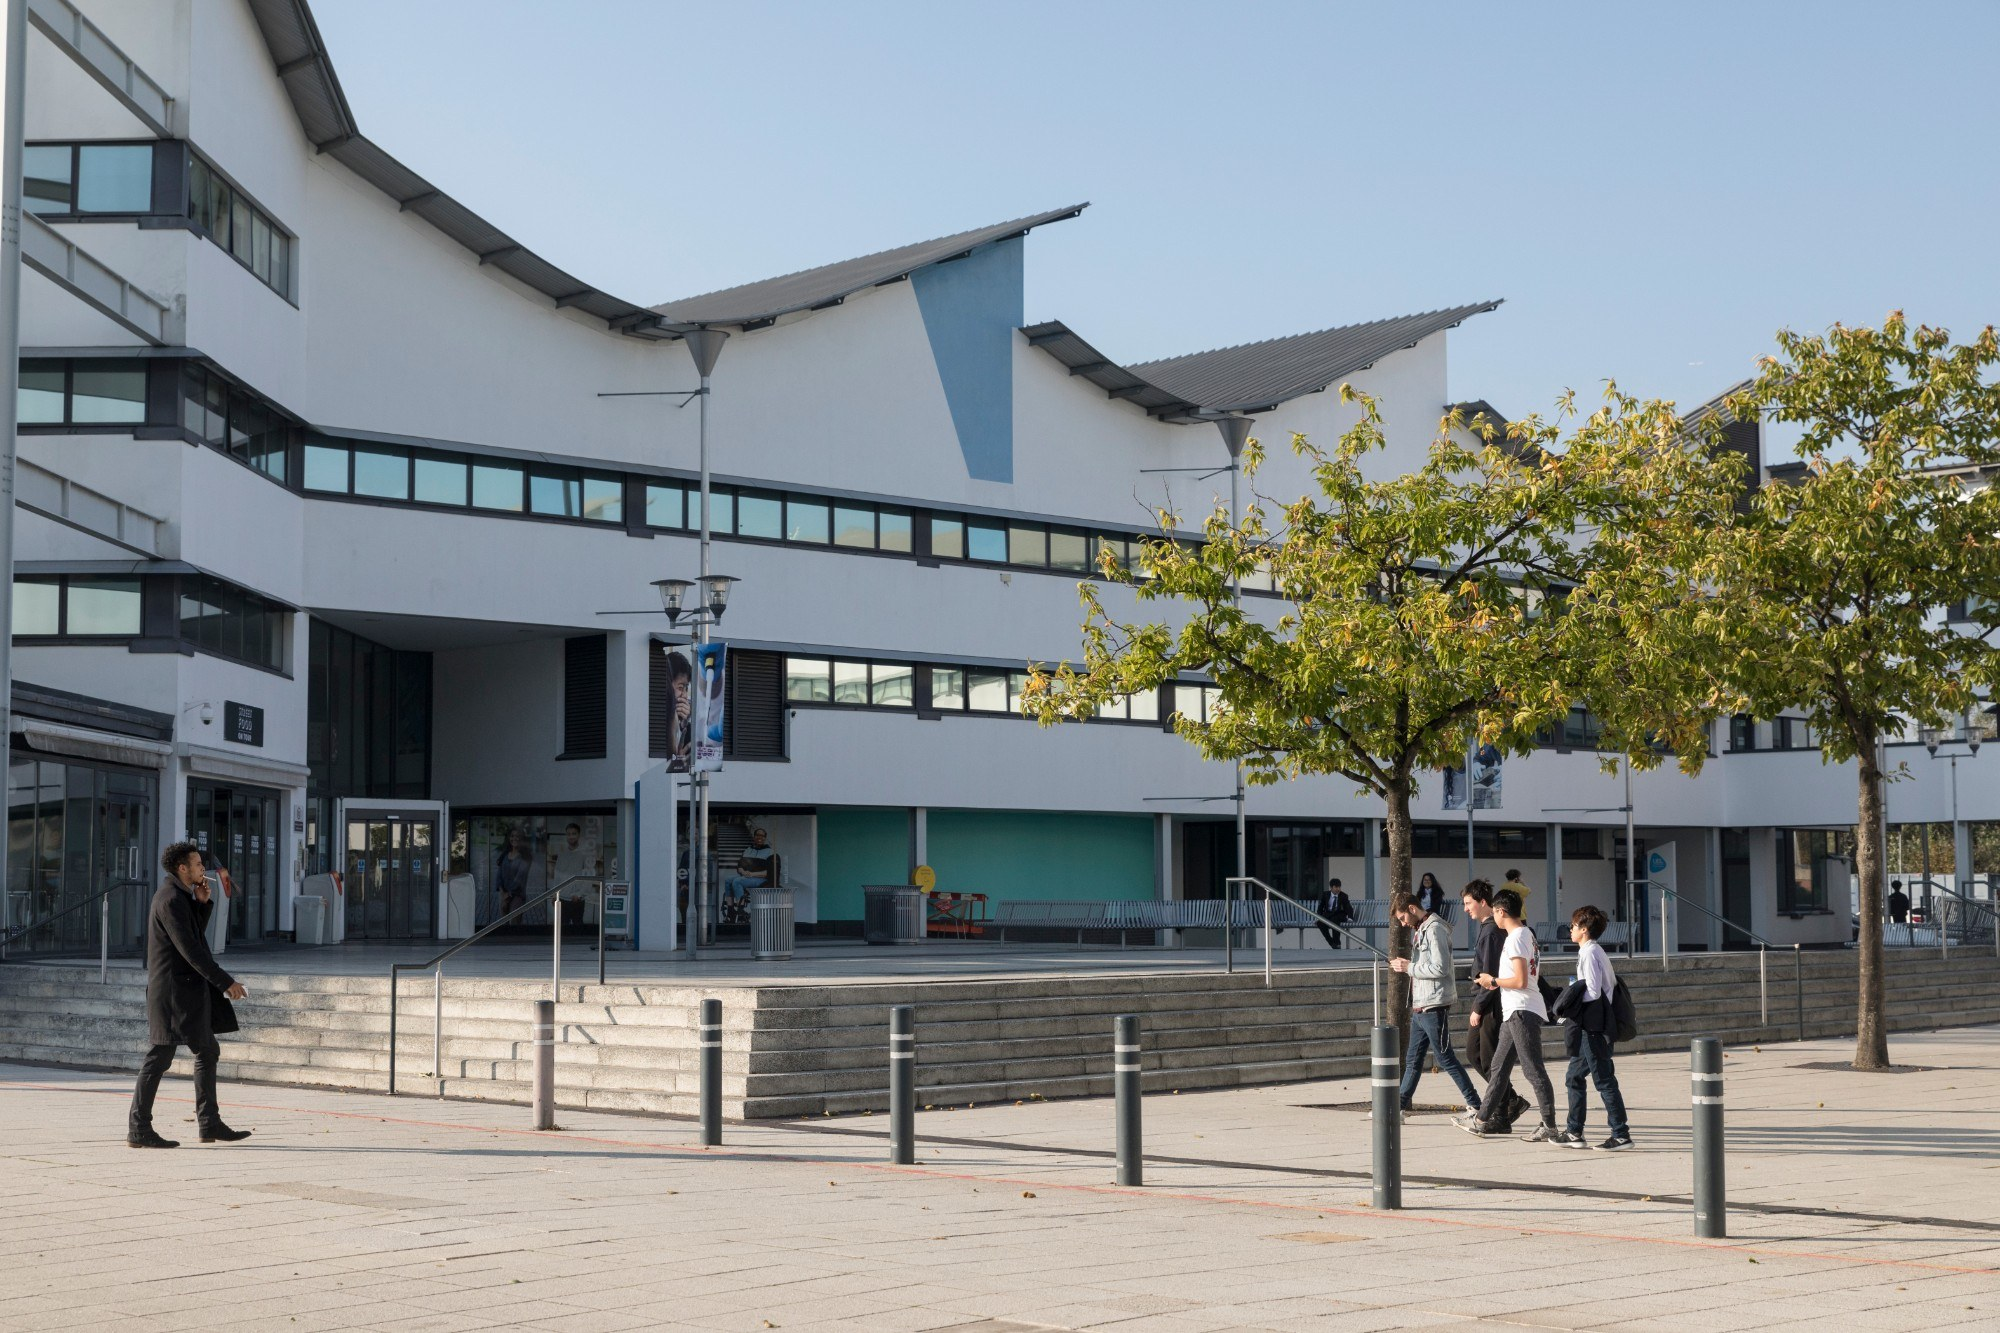 The University of East London campus